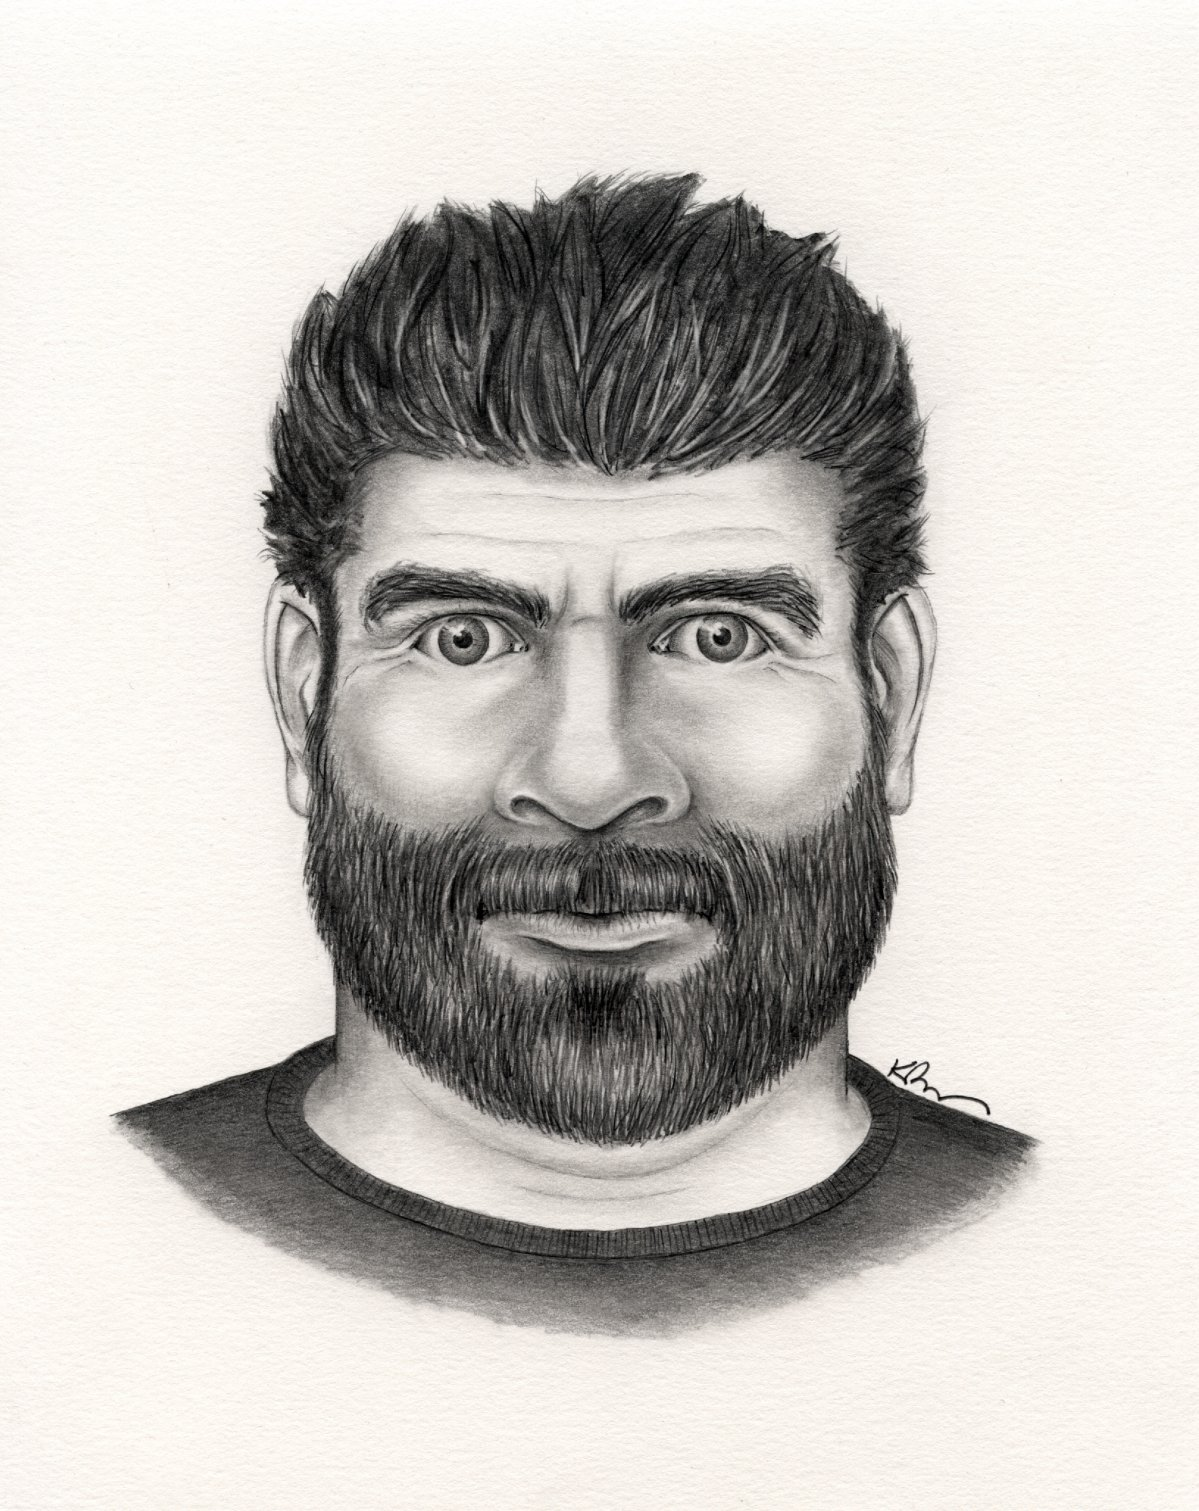 Edmonton police release a composite sketch of a suspect in an alleged sexual assault.